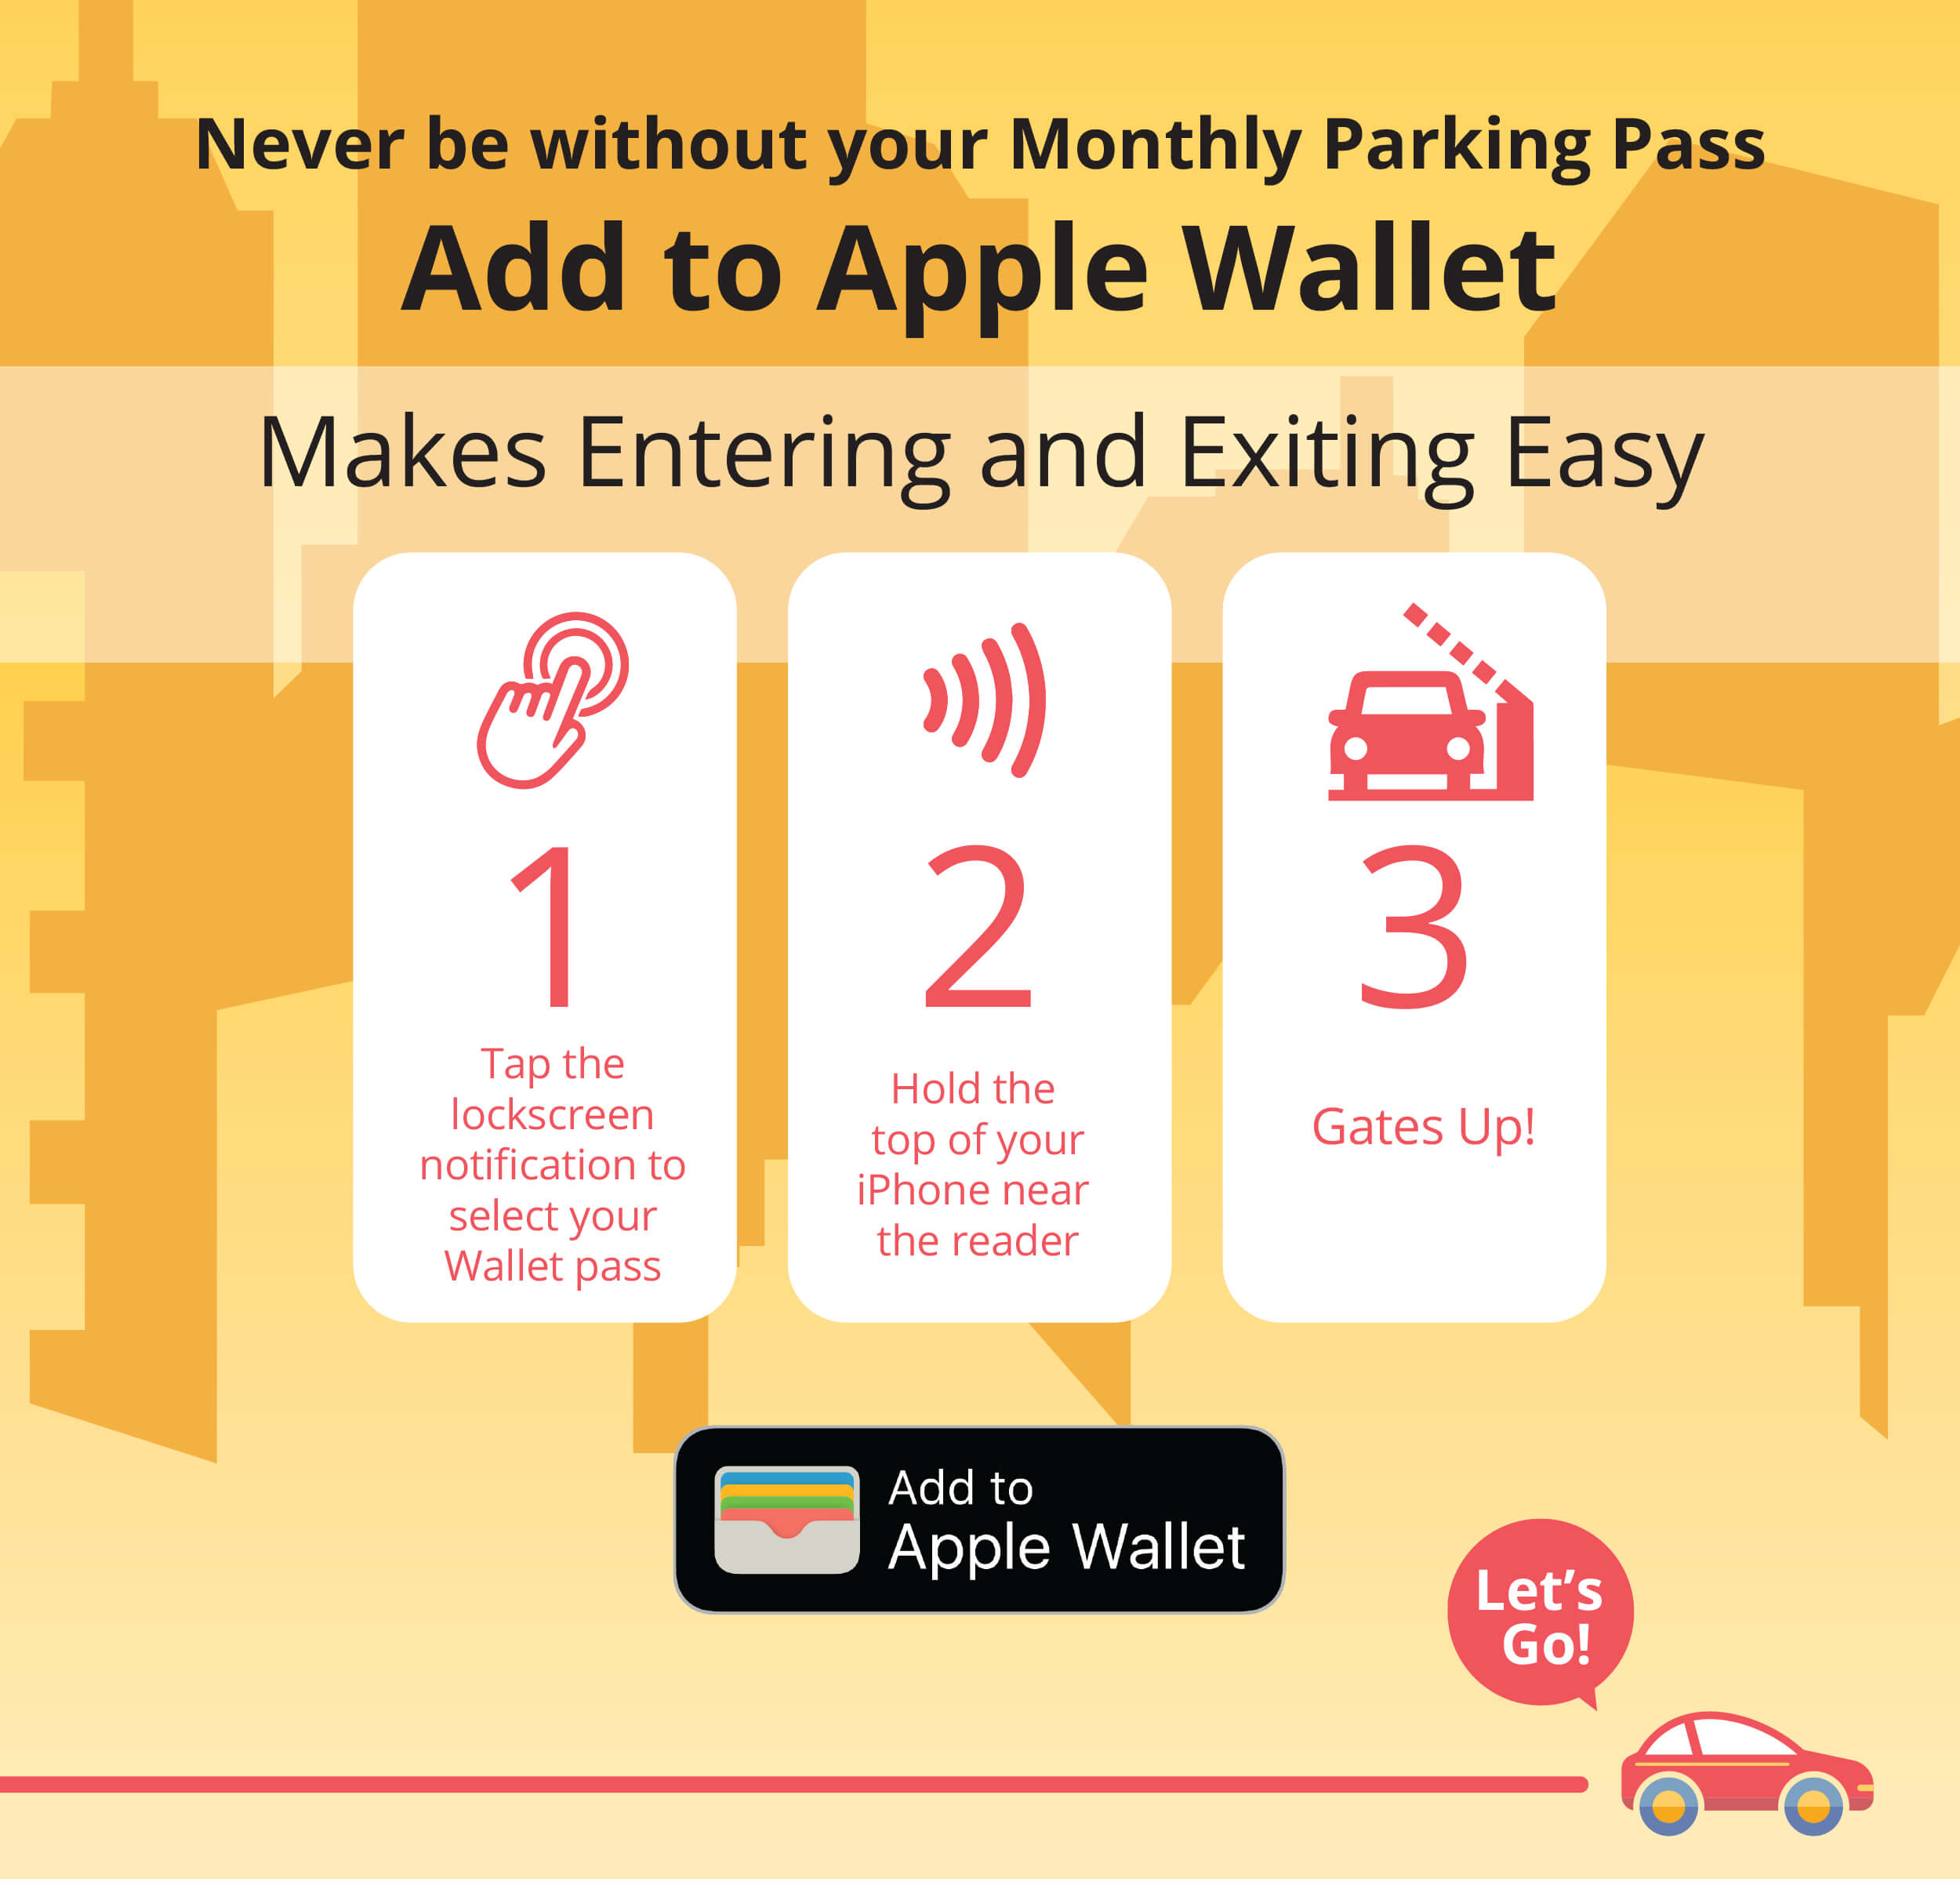 apple wallet parking pass download instructions